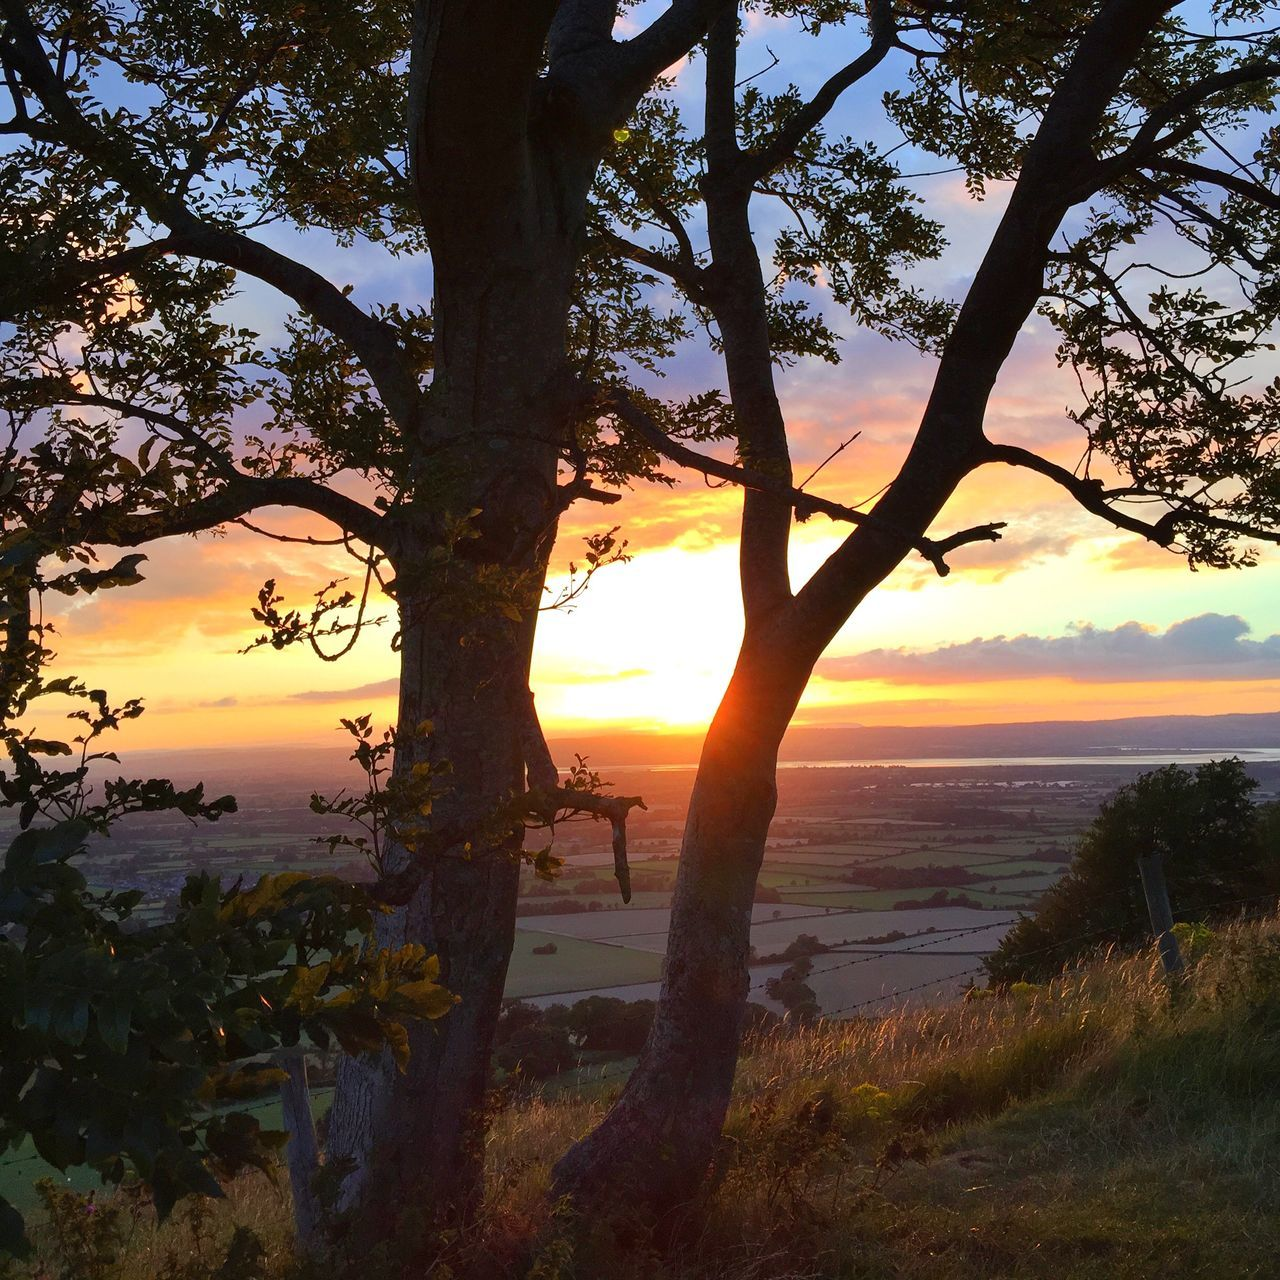 Sunset through the trees Viewpoint Cotswold Way Summer Sunlit Beauty Golden Hour Gloucestershire Sundown Landscape Evening Falls EMCSummerViews Landscapes With WhiteWall 43 Golden Moments The Great Outdoors - 2017 EyeEm Awards